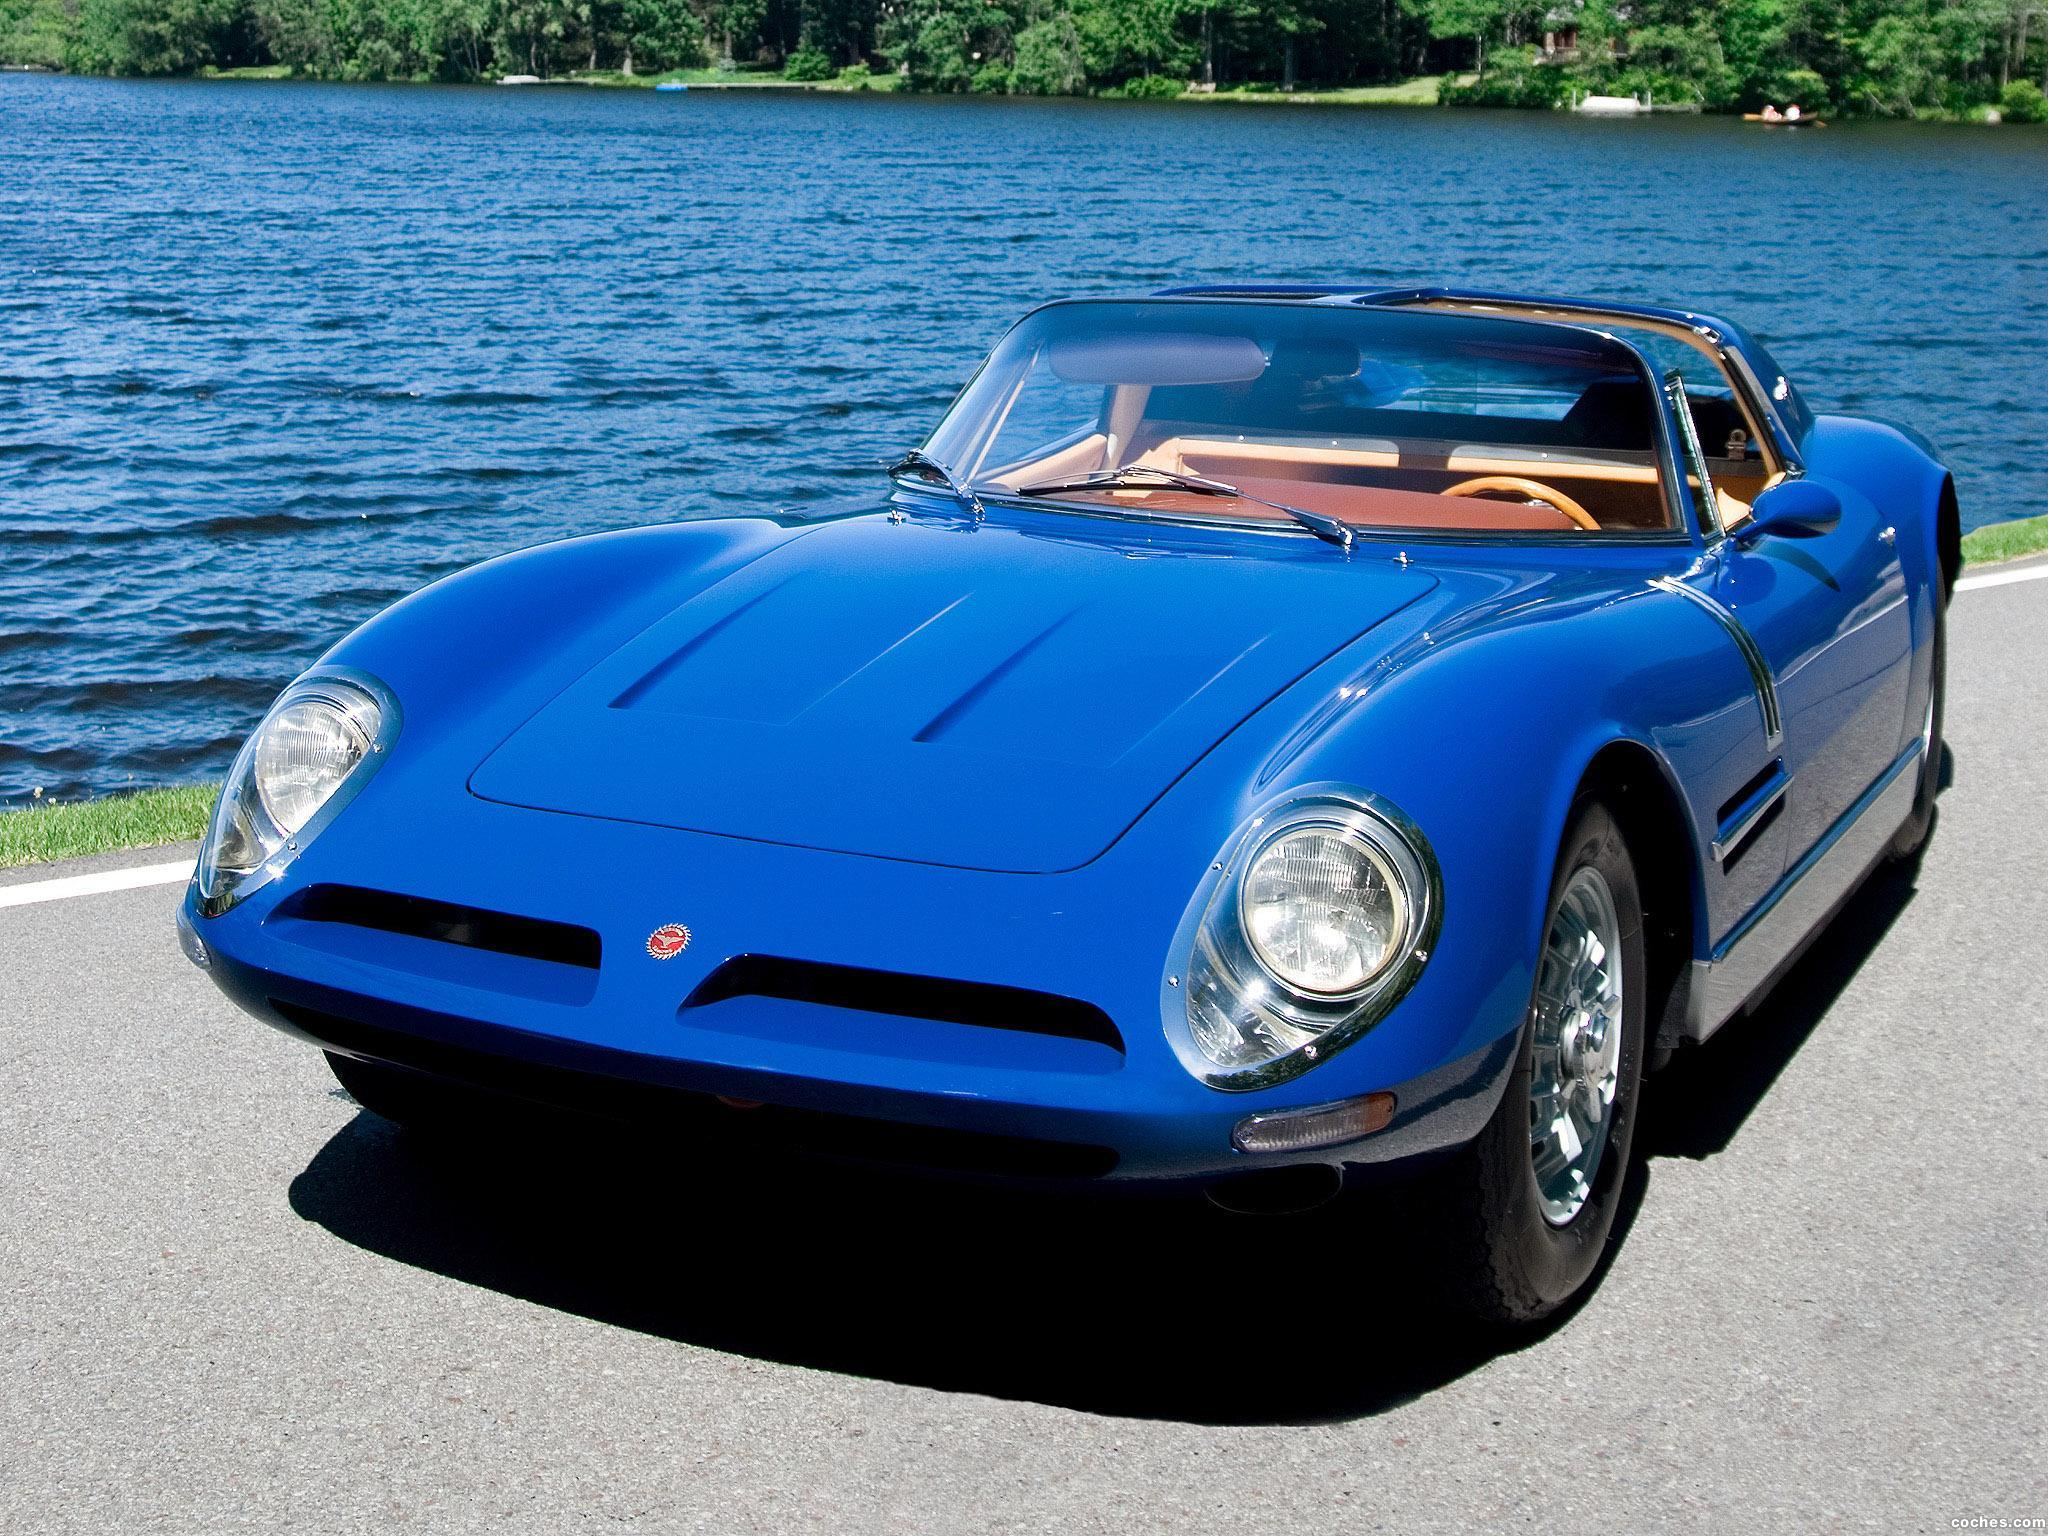 Foto 0 de Bizzarrini 5300 Si Spyder 1967